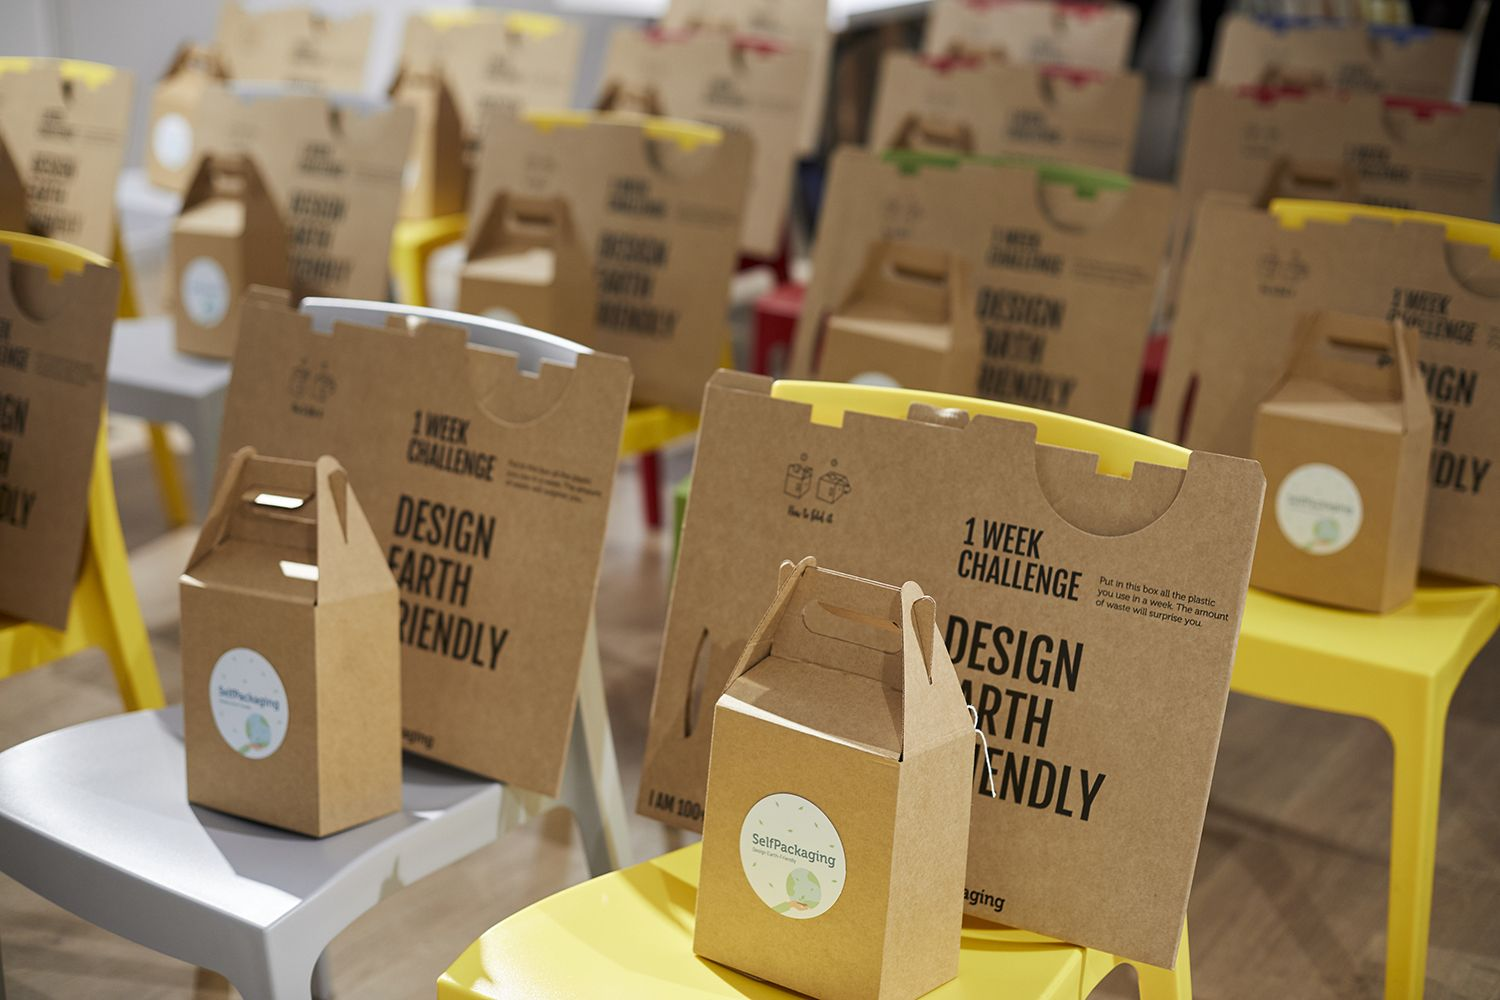 XMAS Challenge de Selfpackaging: Un evento Eco-Friendly